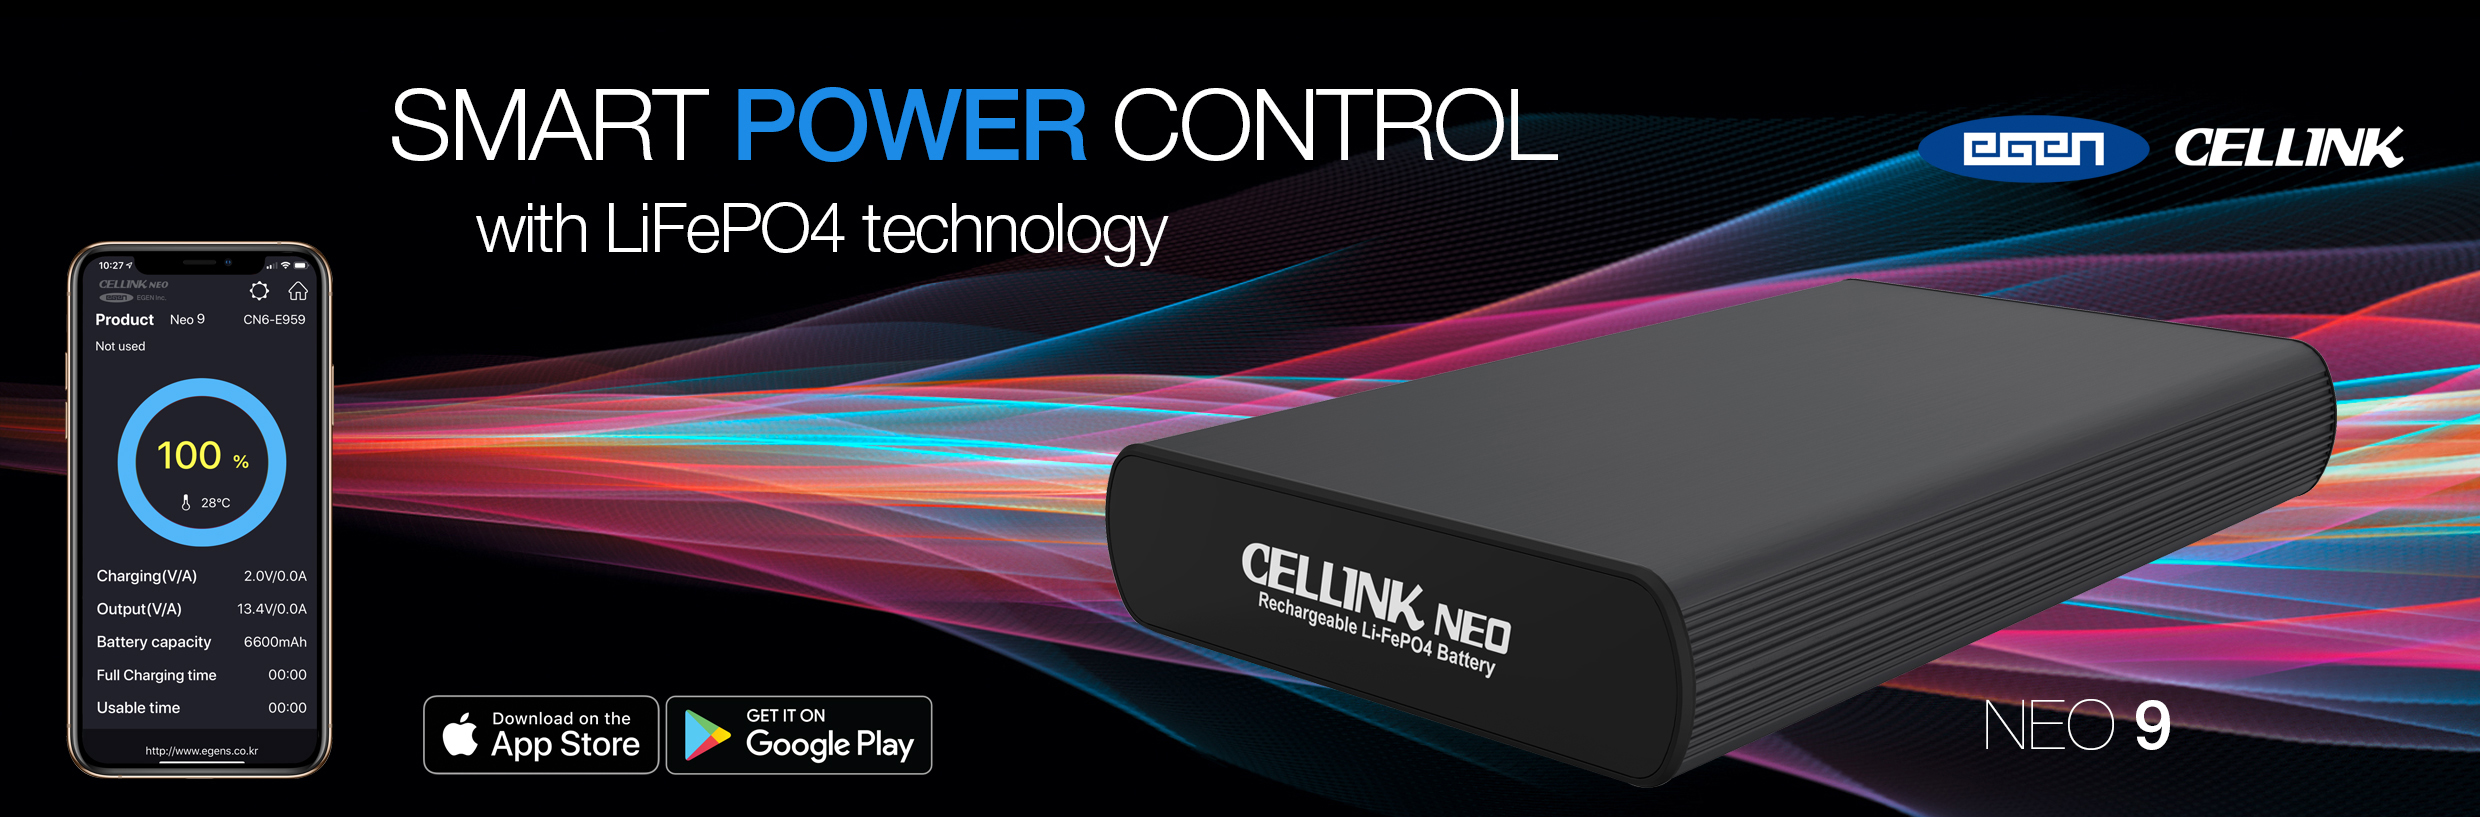 CELLINK NEO 9 The Ultimate Supplementary Dash Cam Power Source.